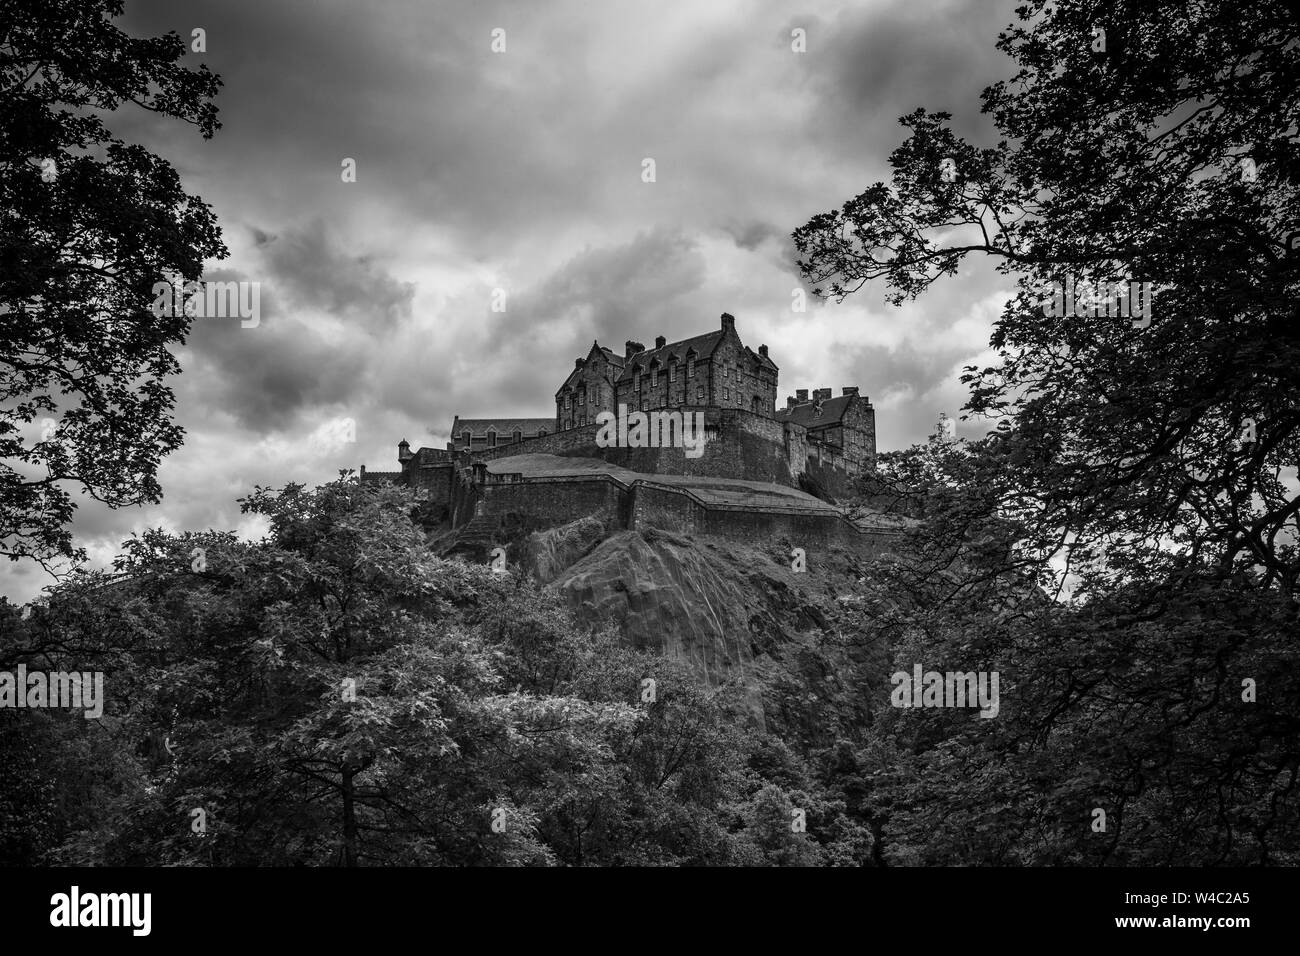 Edinburgh Castle, a historic fortress which dominates the skyline of the city of Edinburgh, Scotland from its position on the Castle Rock. Stock Photo